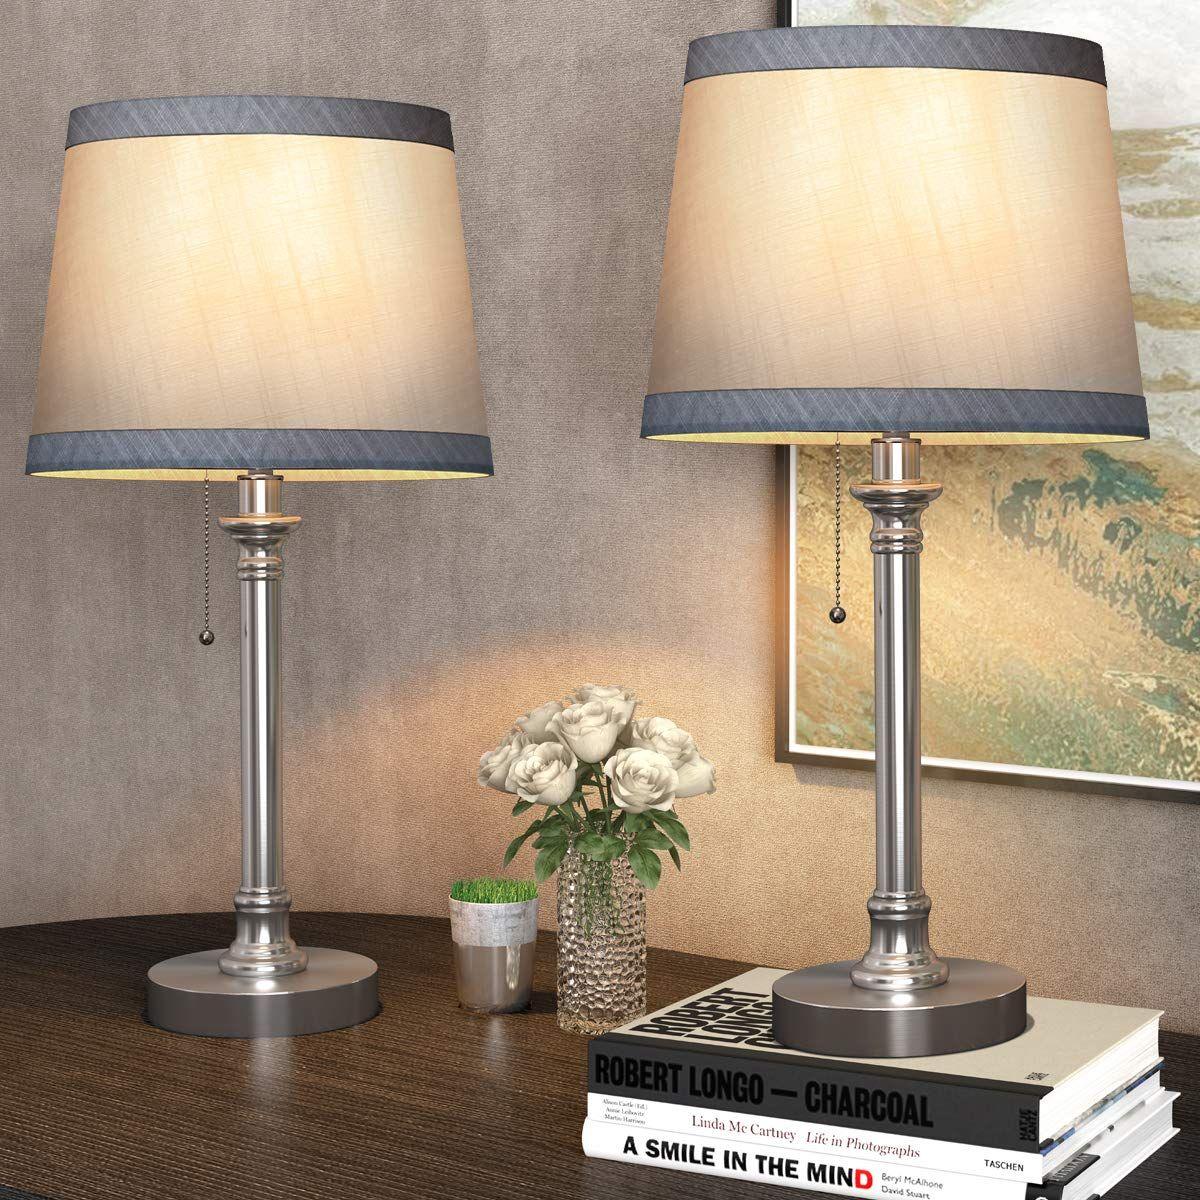 Oneach Modern Table Lamp Set Of 2 For Bedroom Living Room Bedside Night Stand Lamp Small Desk Lamps With Pull Chain Silv In 2020 Lamp Small Desk Lamp Modern Table Lamp